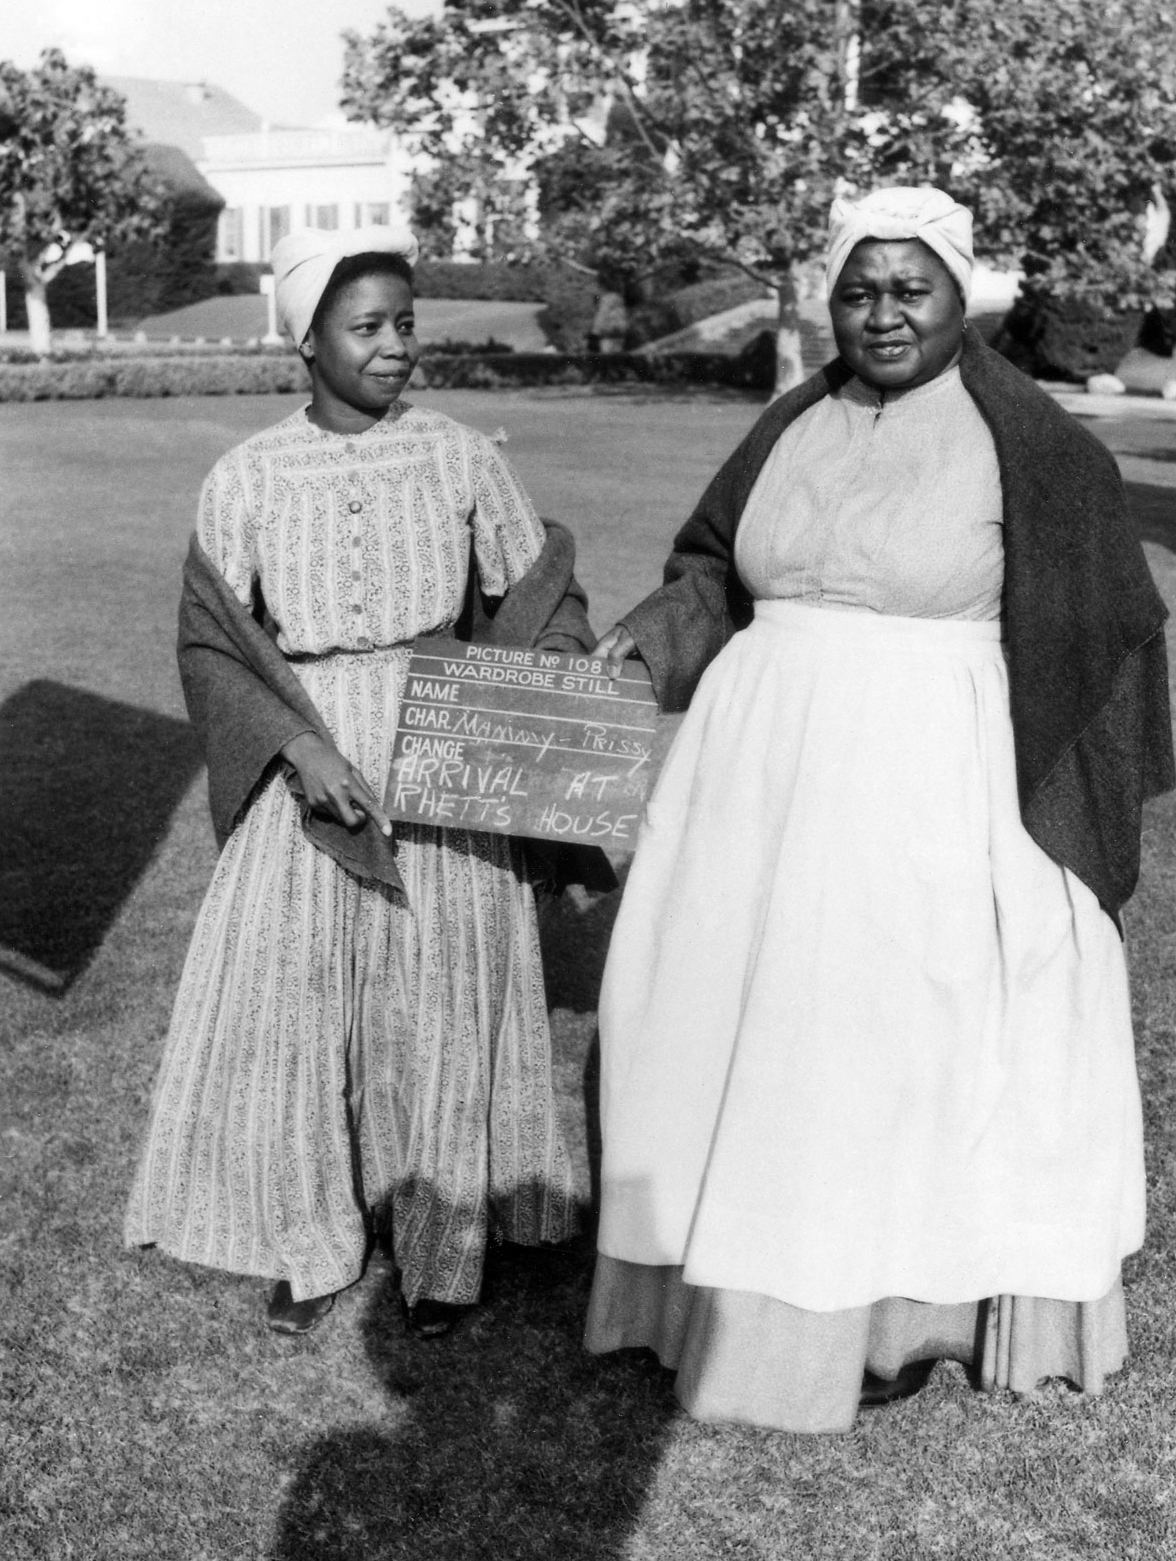 Hattie McDaniel, right, as Mammy, on the set of Gone with the Wind in 1939.